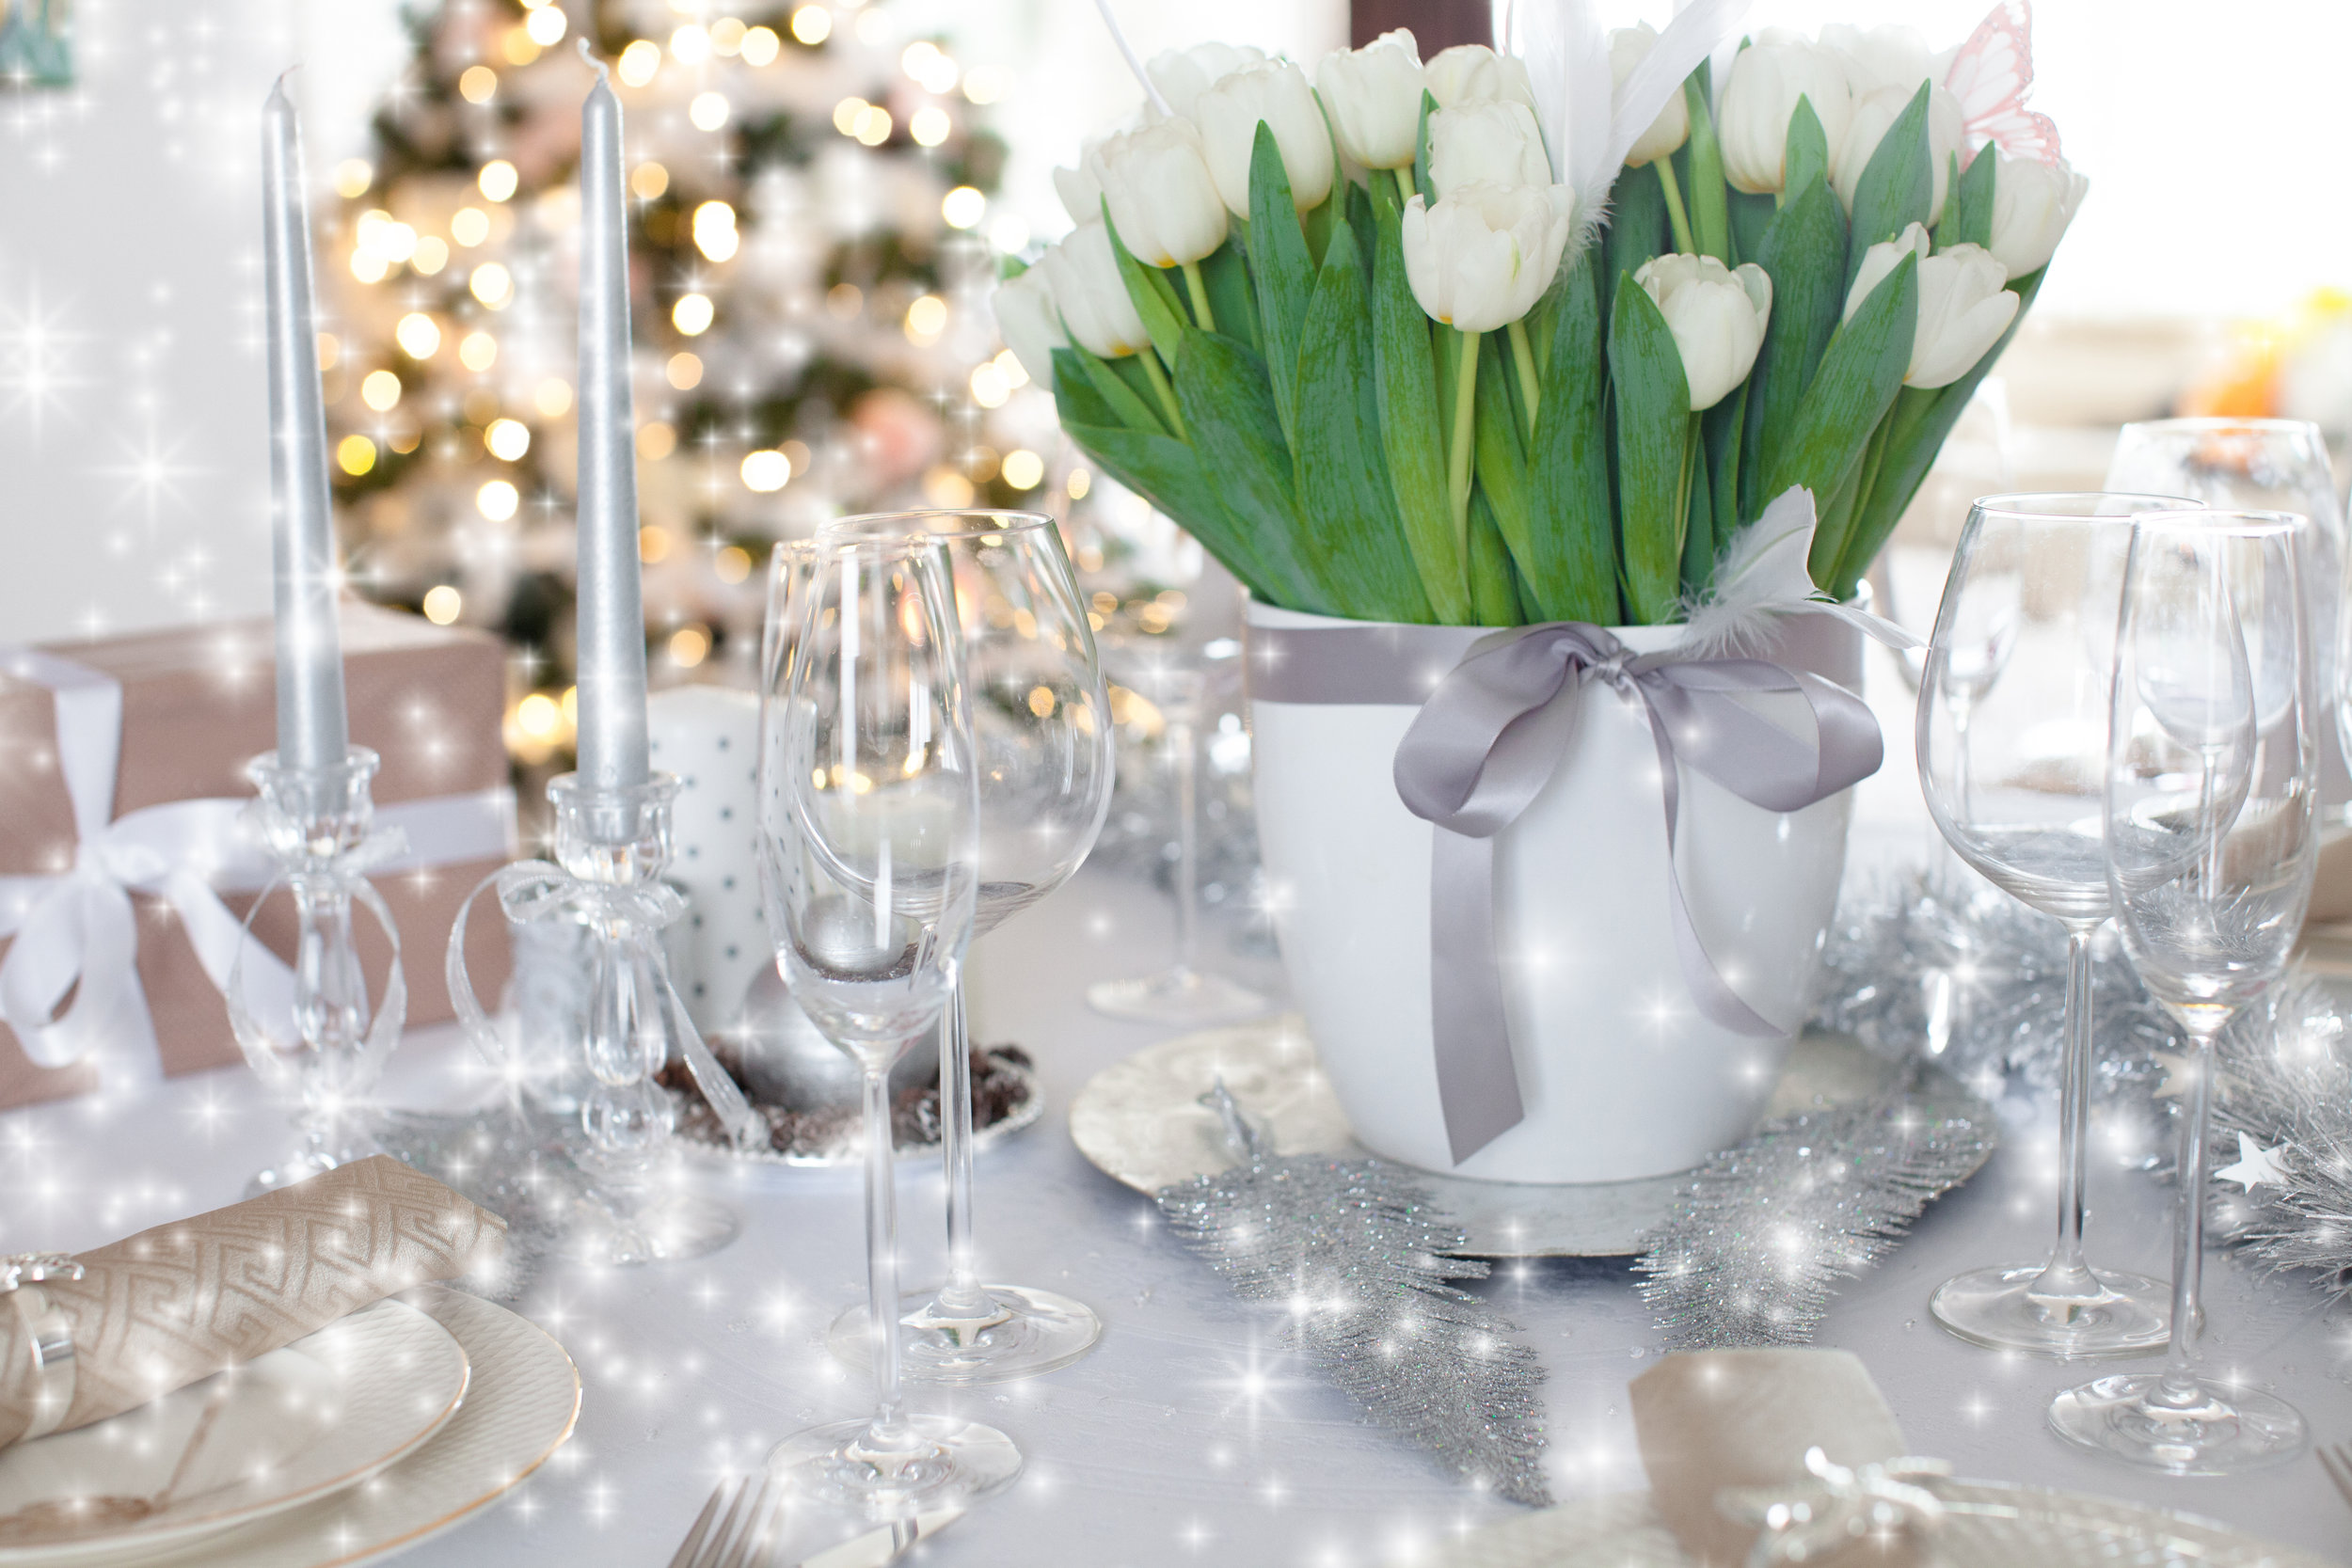 theme - We help plan unique, Brunches, Luncheons and Dinners. Right from planning the menu, and setting the table, to decorating the room we can help with all or any of it. It's such a stress free way to unwind and enjoy your own party… and its cheaper than you think !